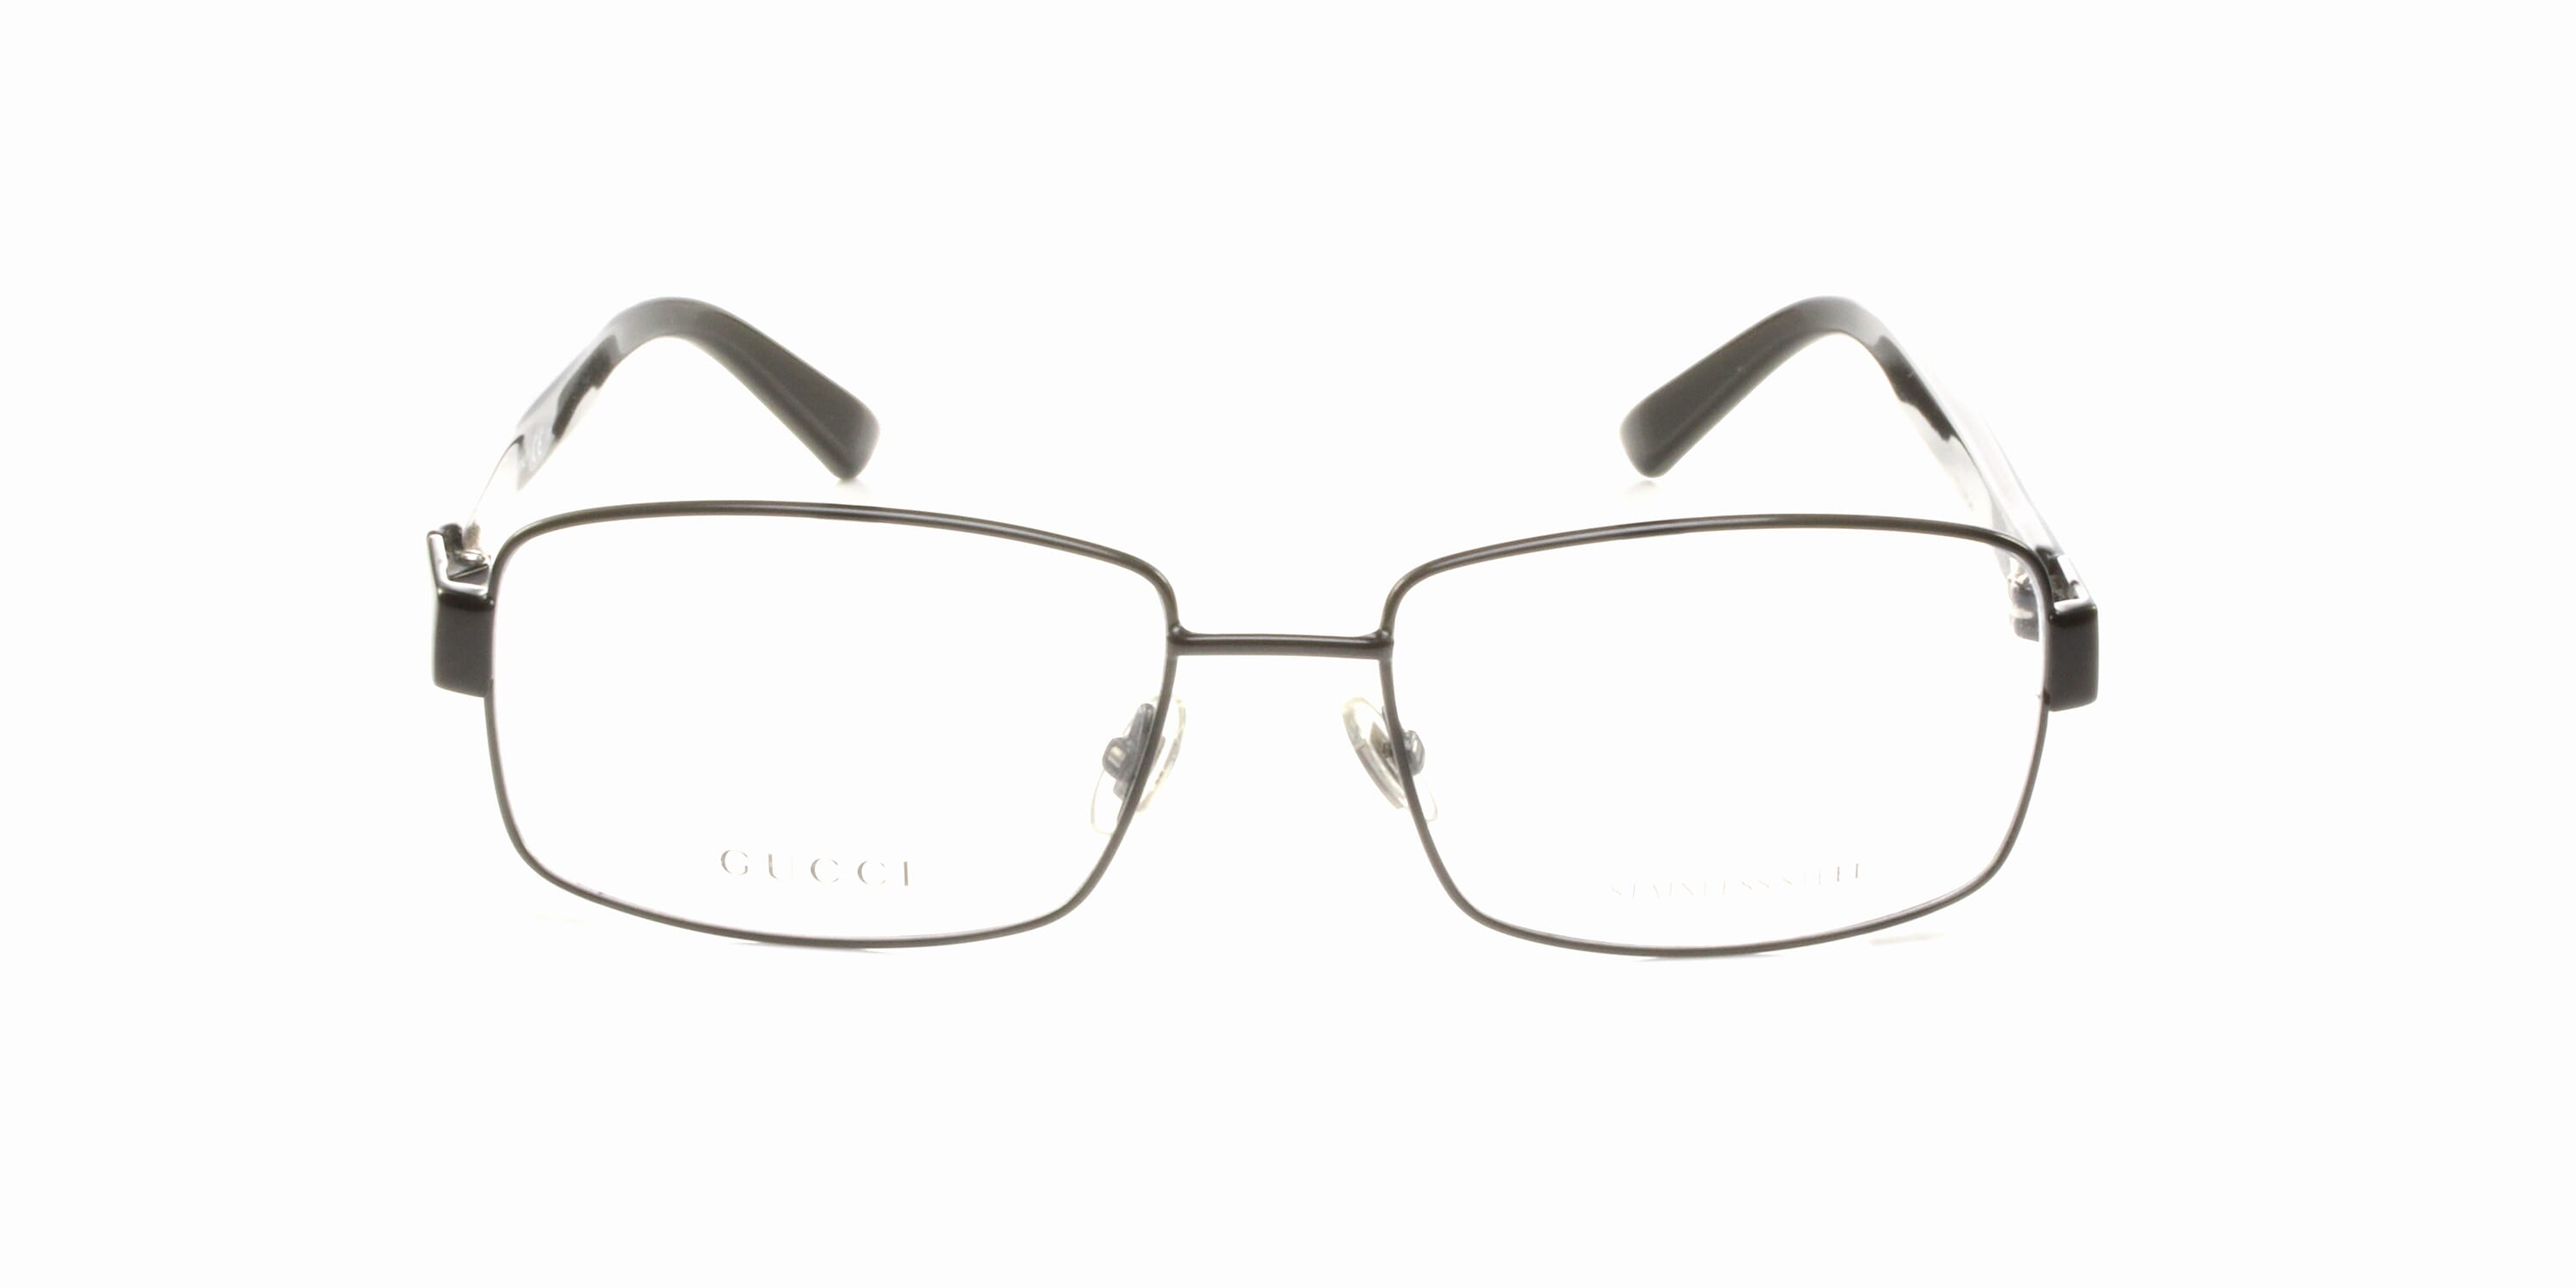 Buy Gucci GG 1942 RQ2 (55) Glasses | Gucci designer glasses online ...